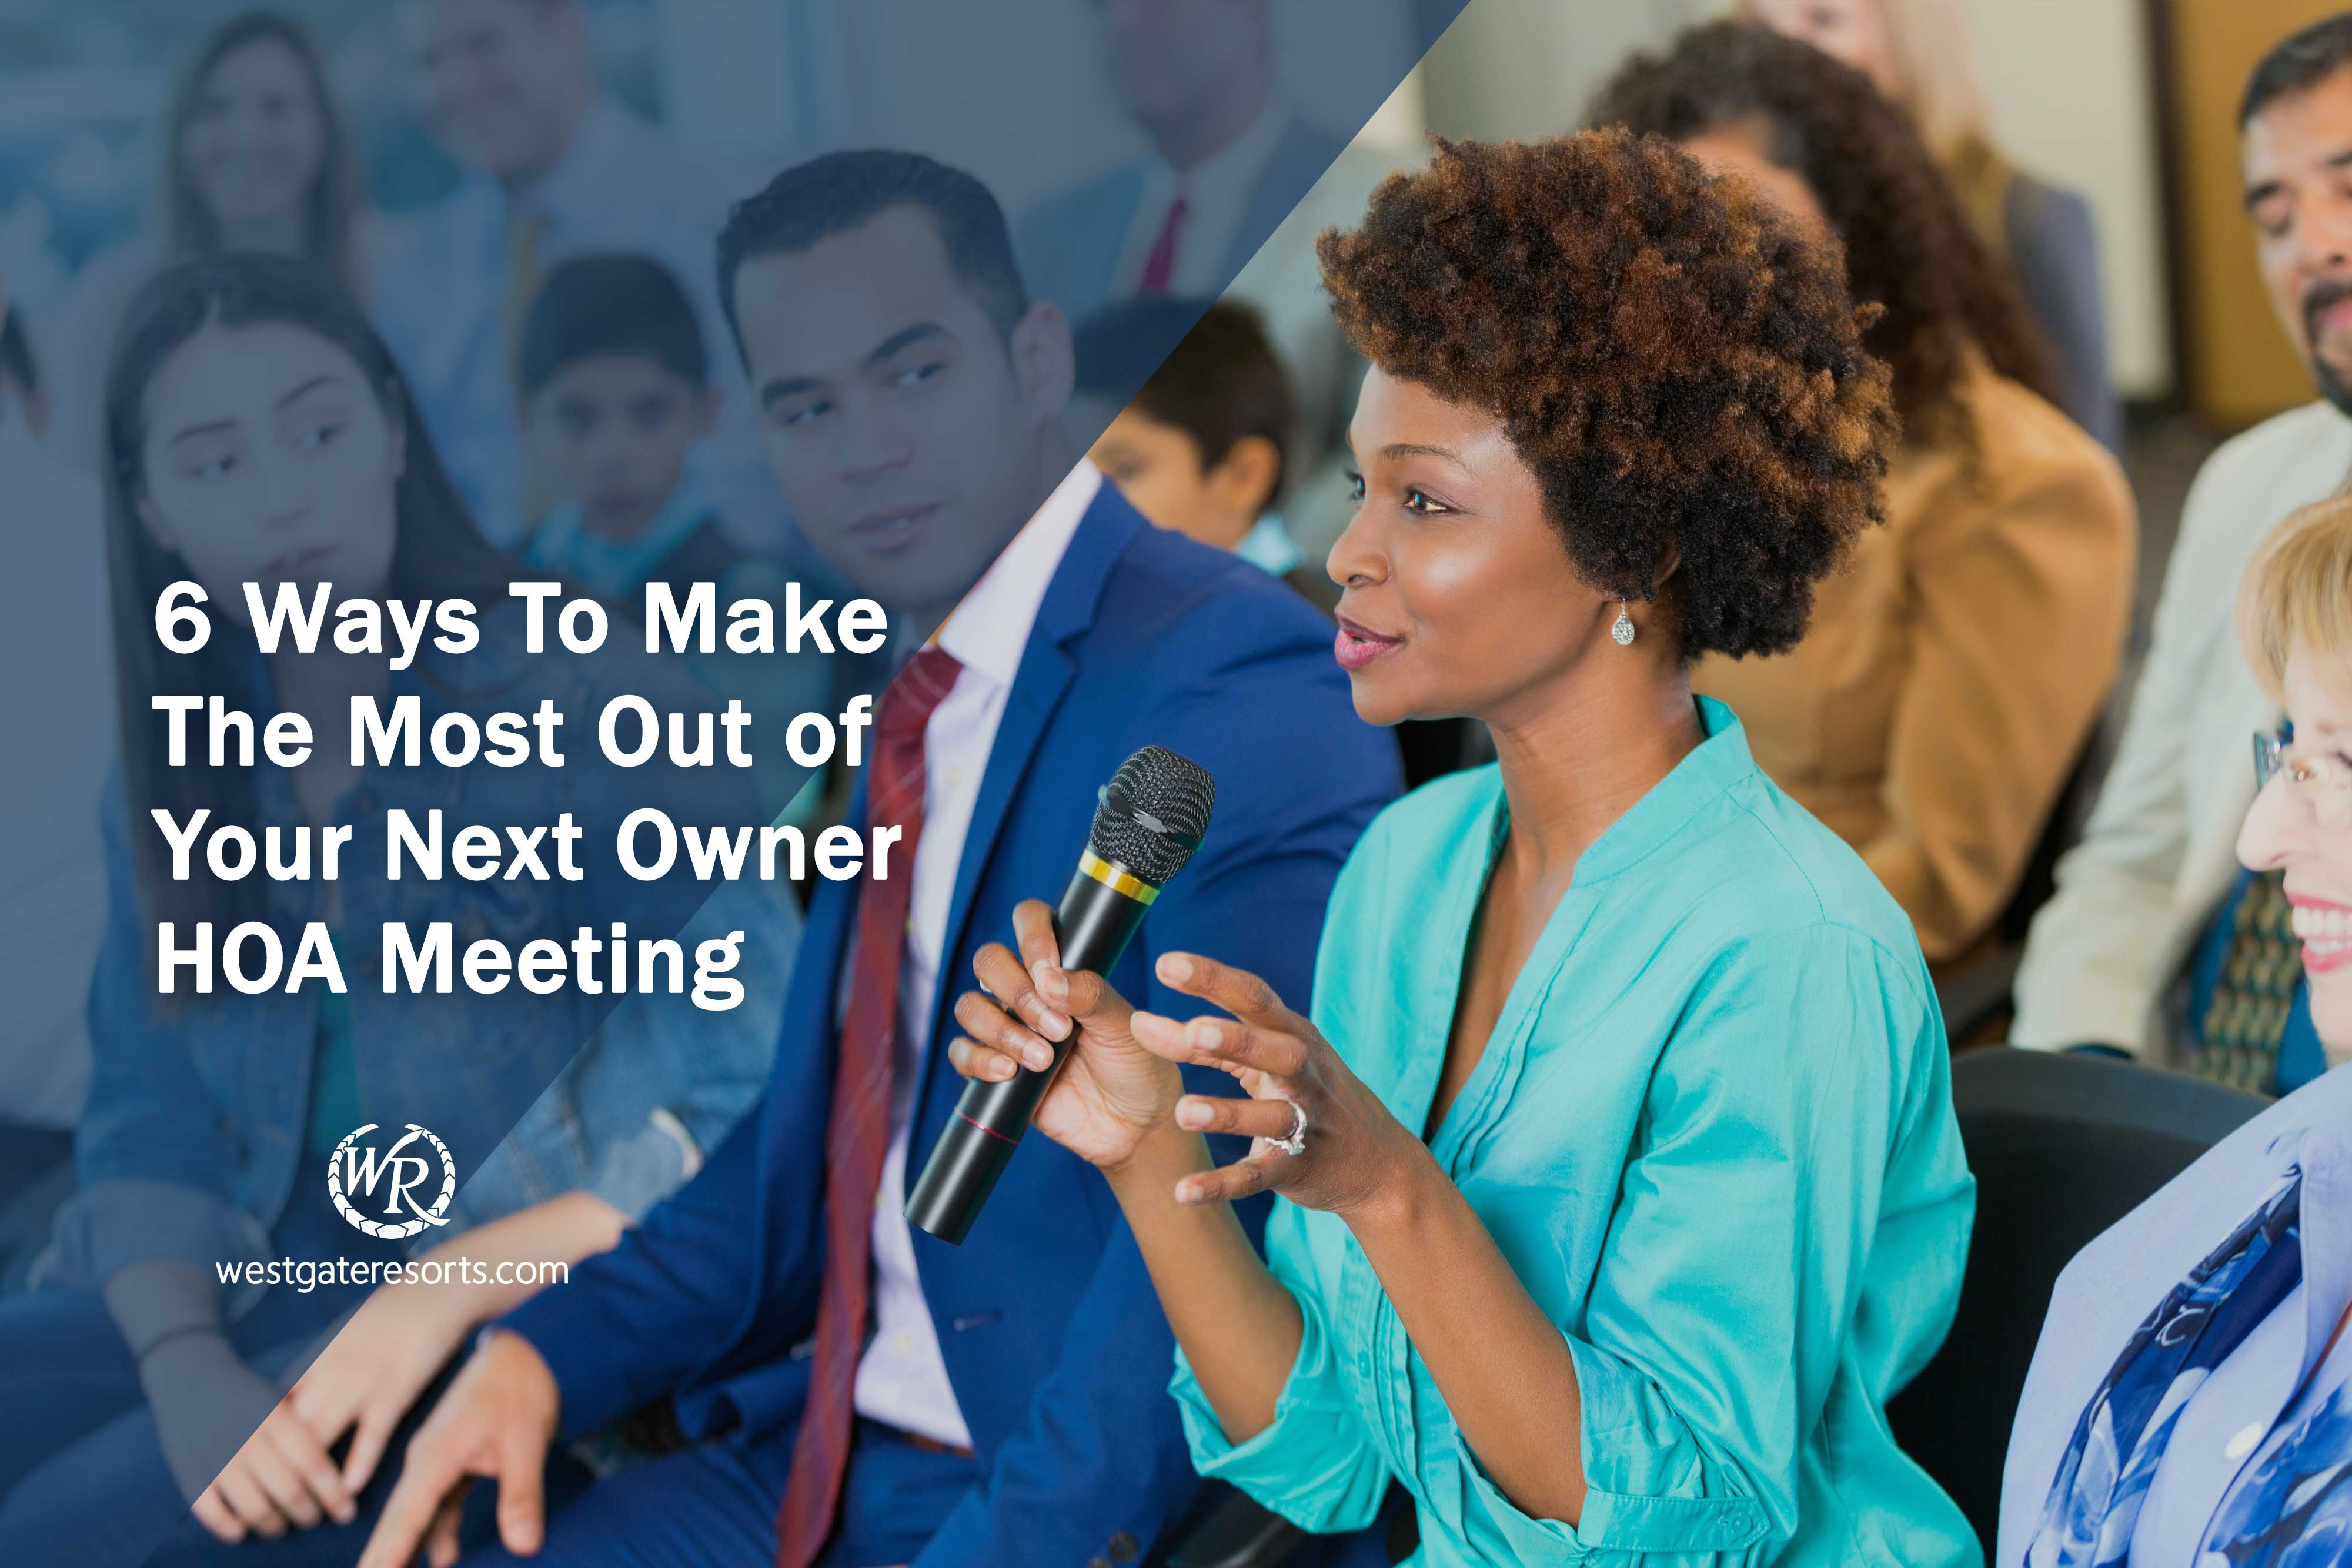 6 Ways to Make The Most Out of Your Next Owner HOA Meeting